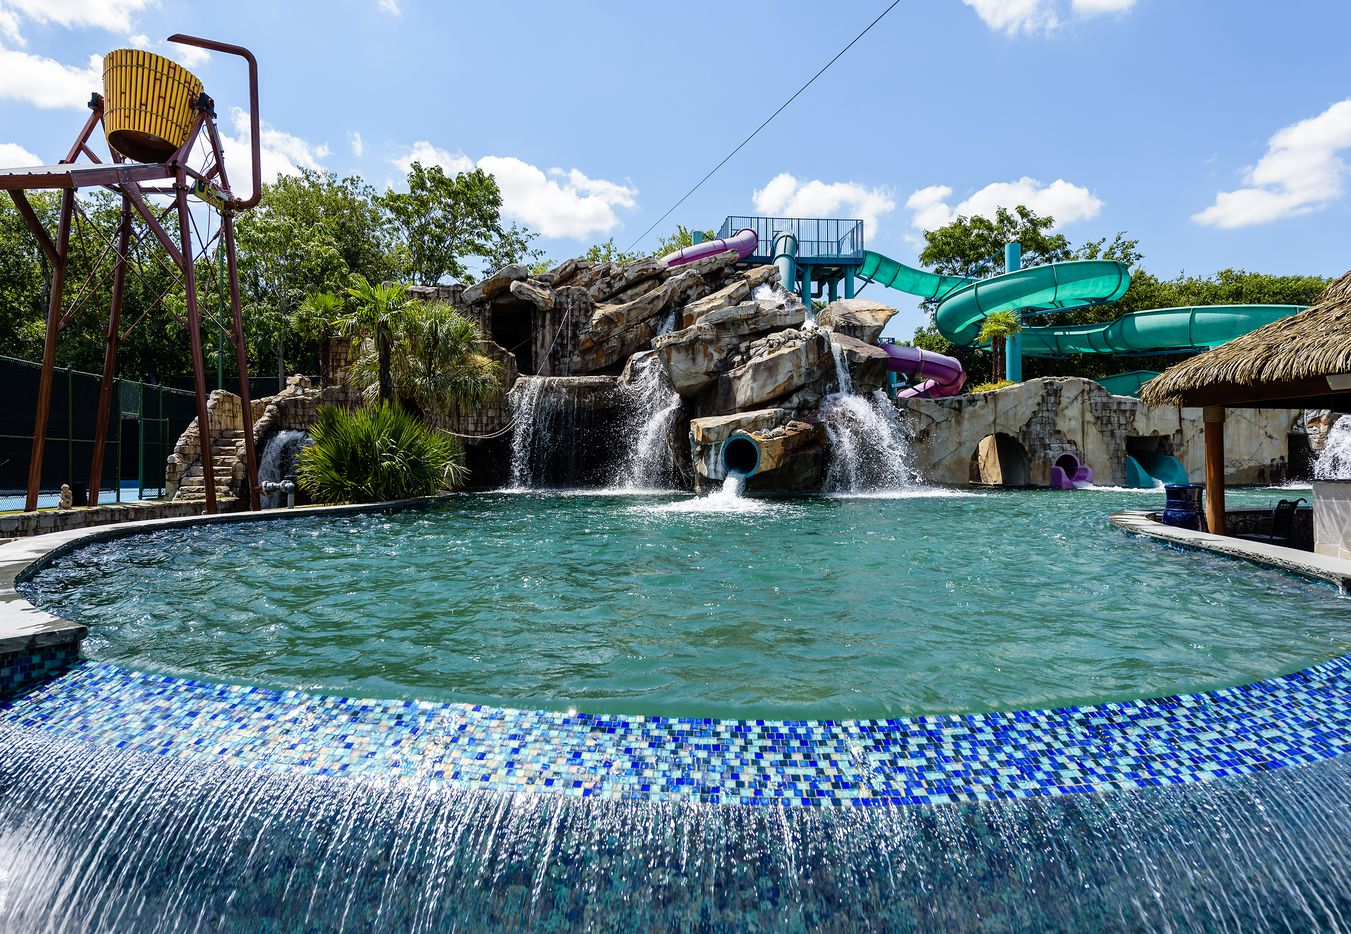 The waterpark has pools and slides.